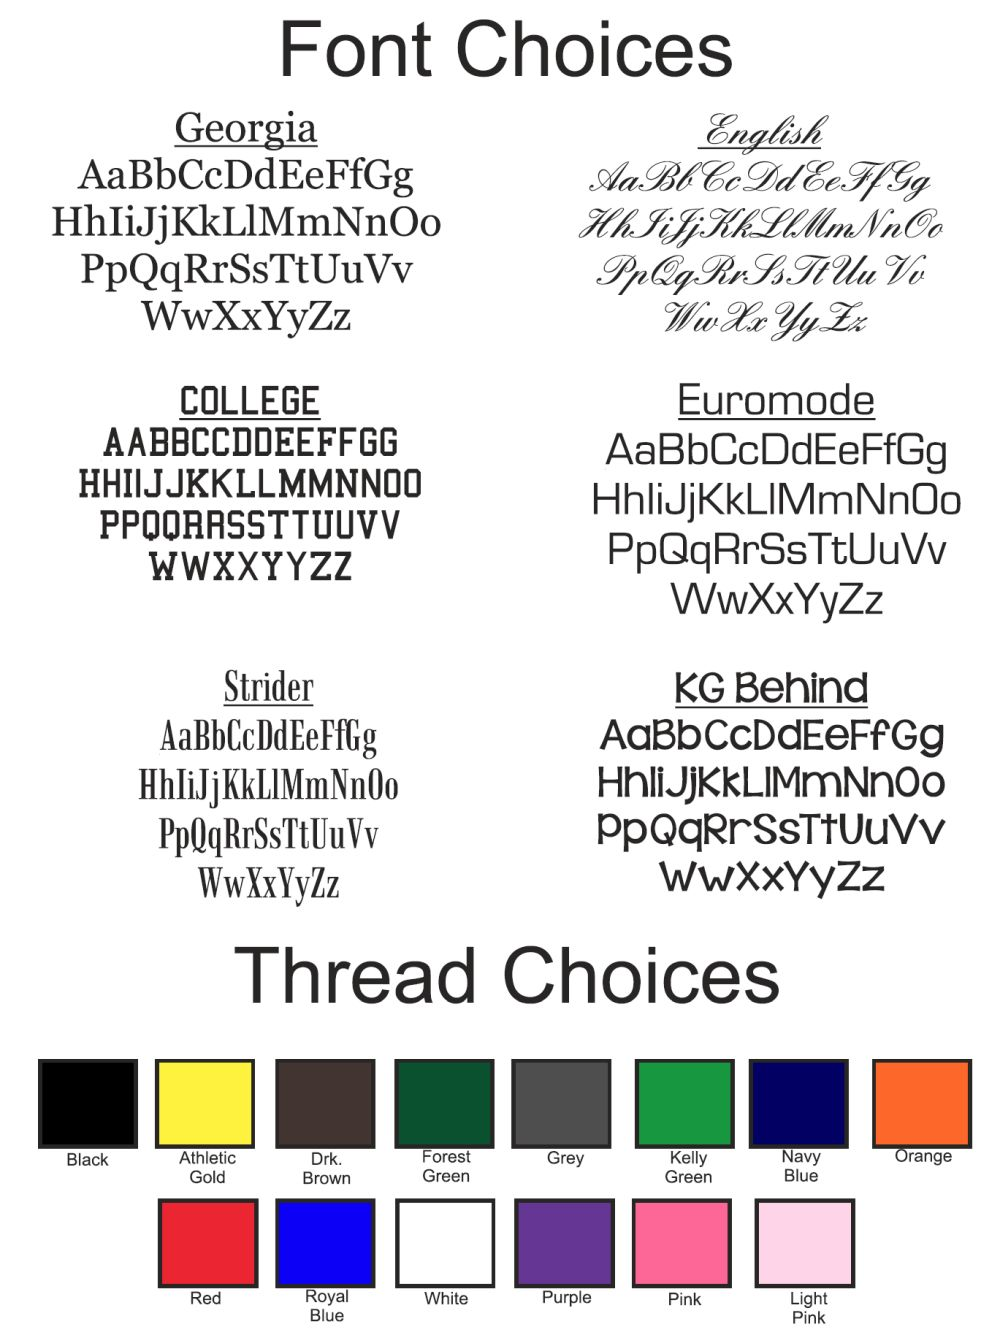 font-choices-thread-colors.jpg